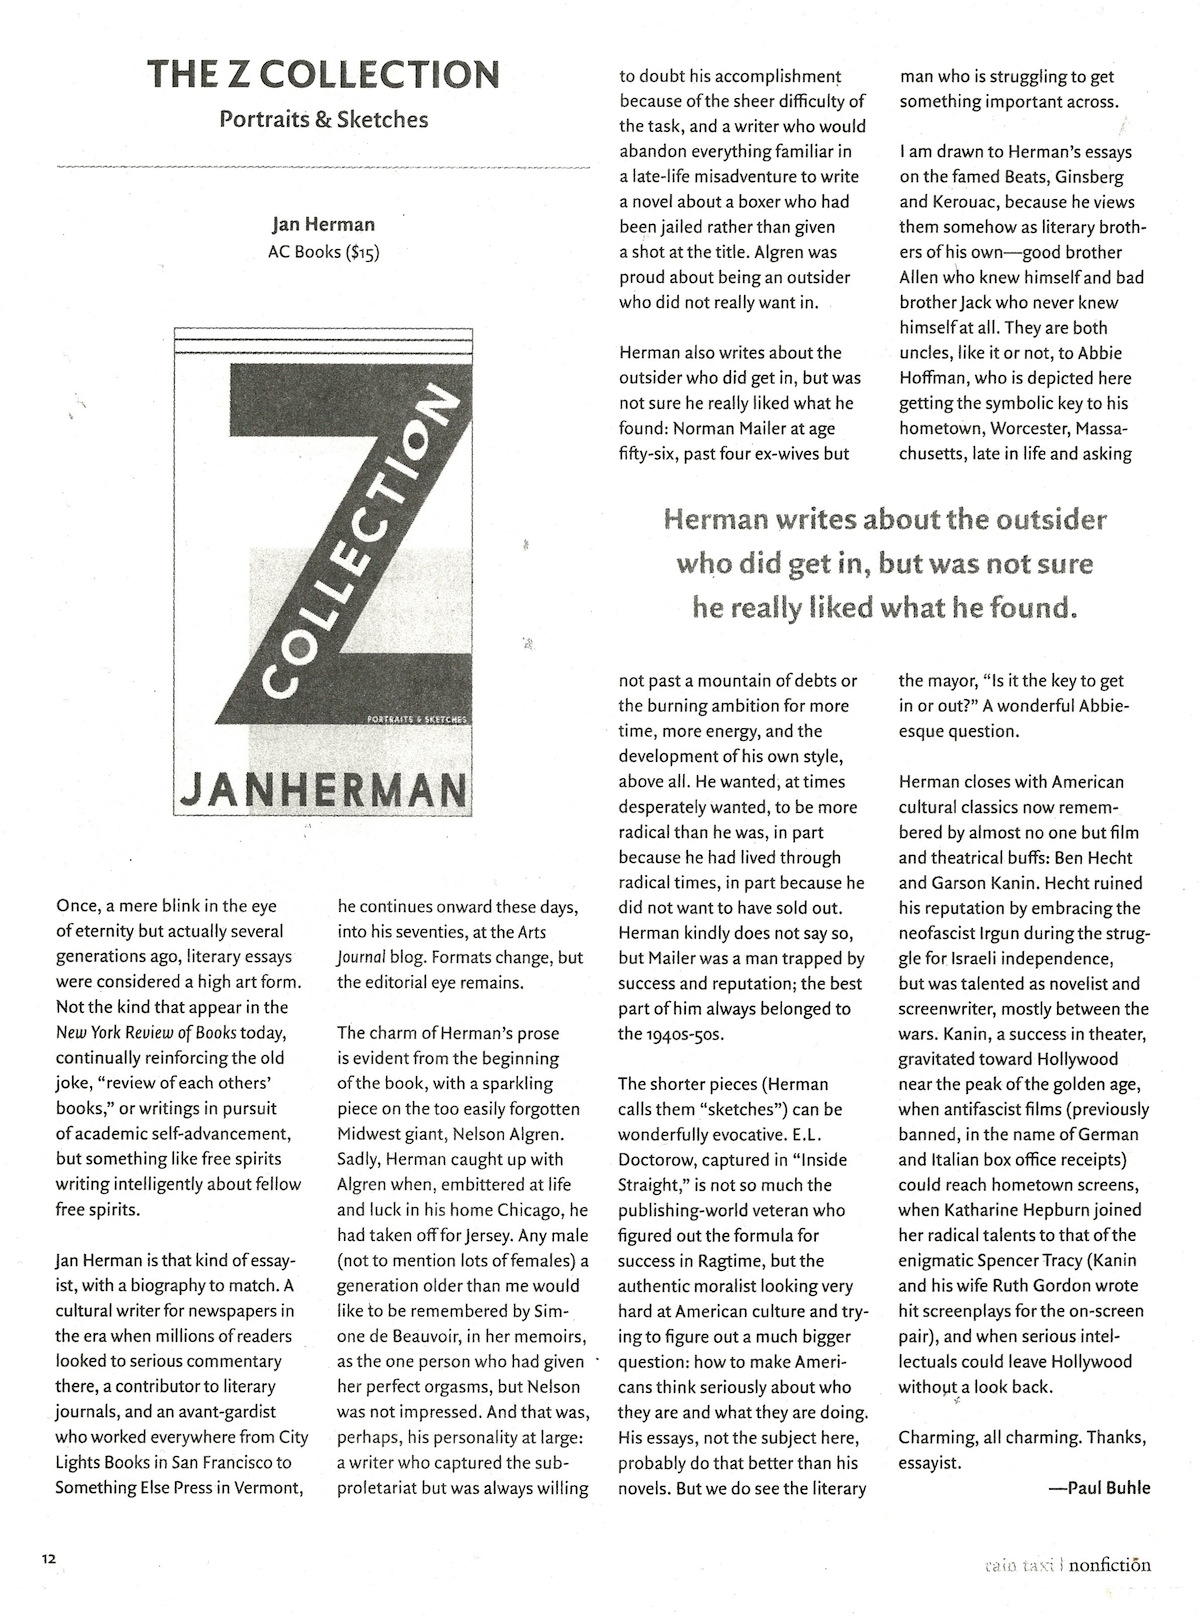 review of herman and chomsky essay Chomsky on the mass media  the chomsky/herman 'propaganda model' of the us mass media is a 'guided free market' model, in which thought is controlled by.